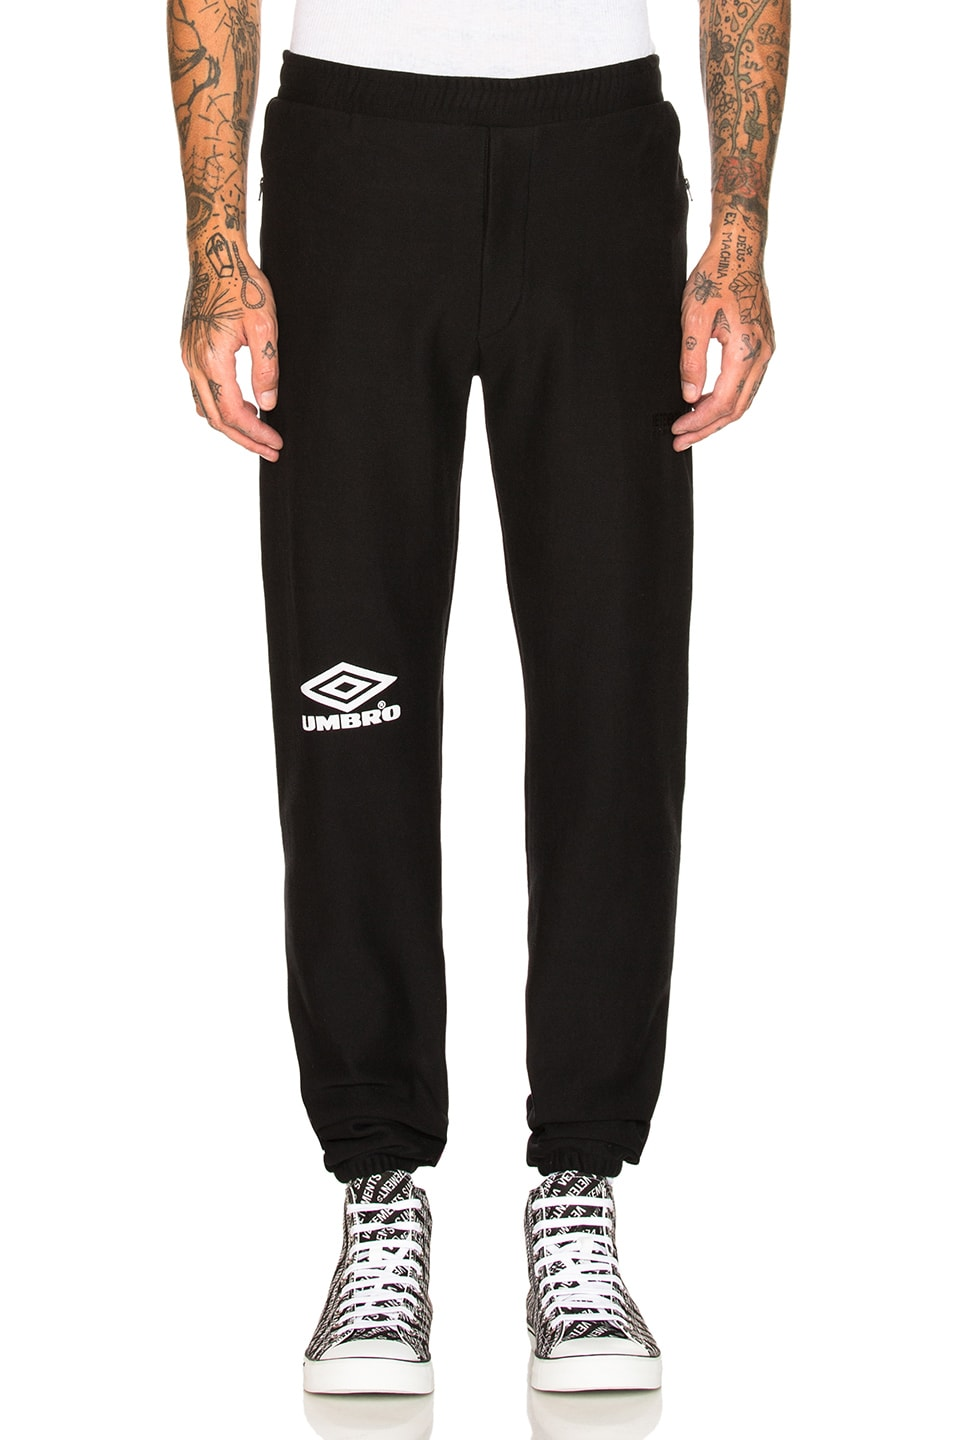 Image 1 of VETEMENTS x Umbro Sweatpants in Black   White c217bf30a91b